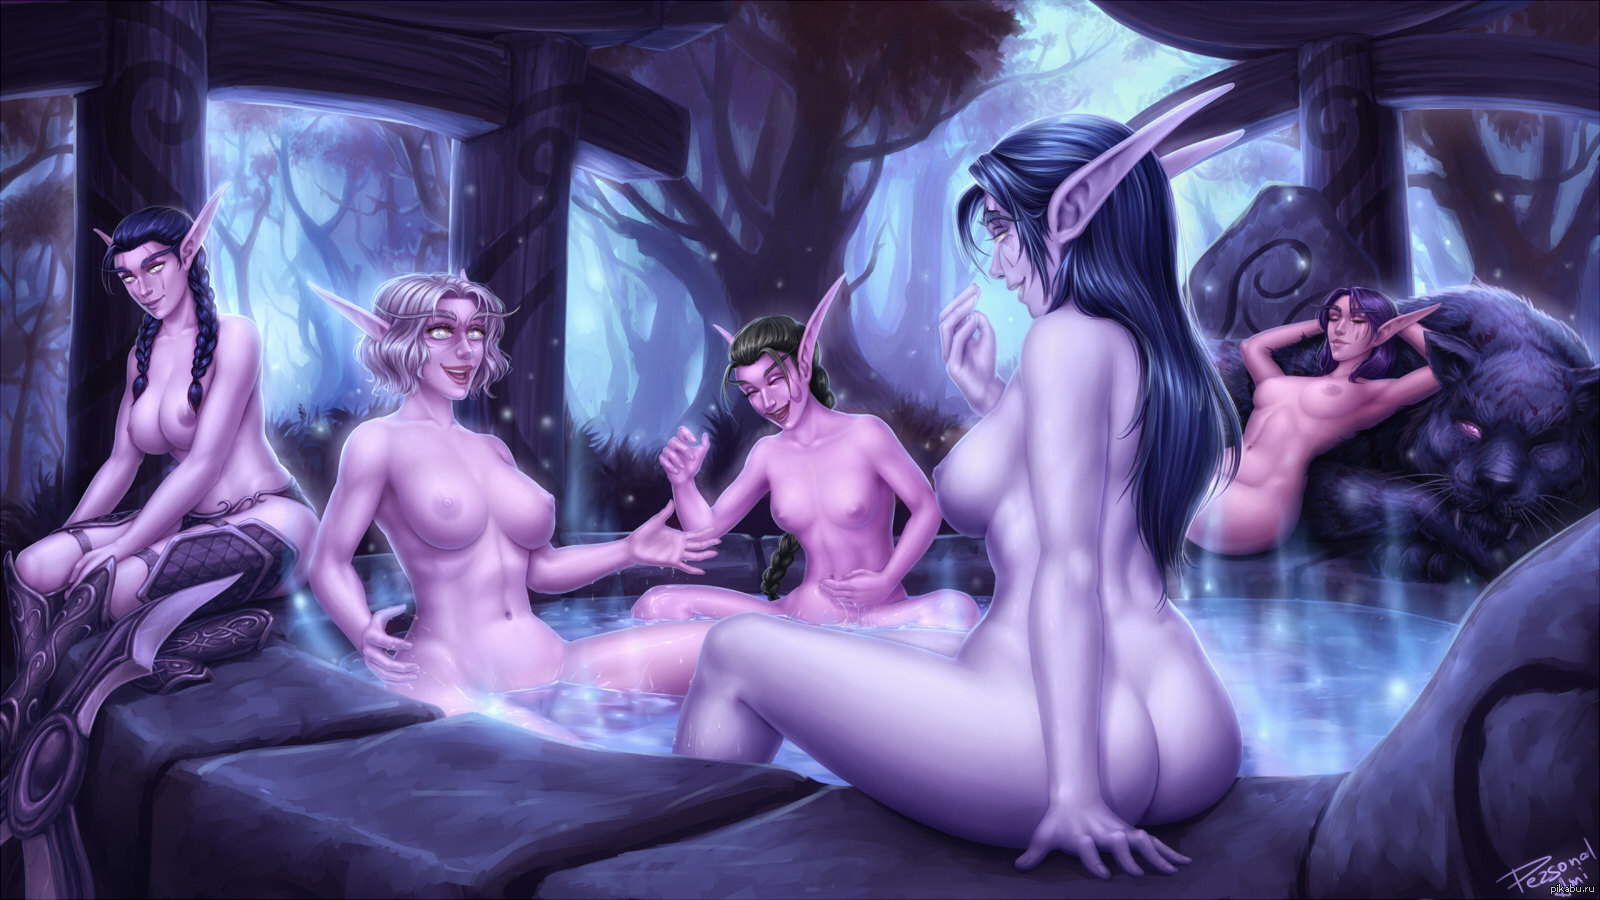 World of warcraft hd wallpapers erotic adult comics